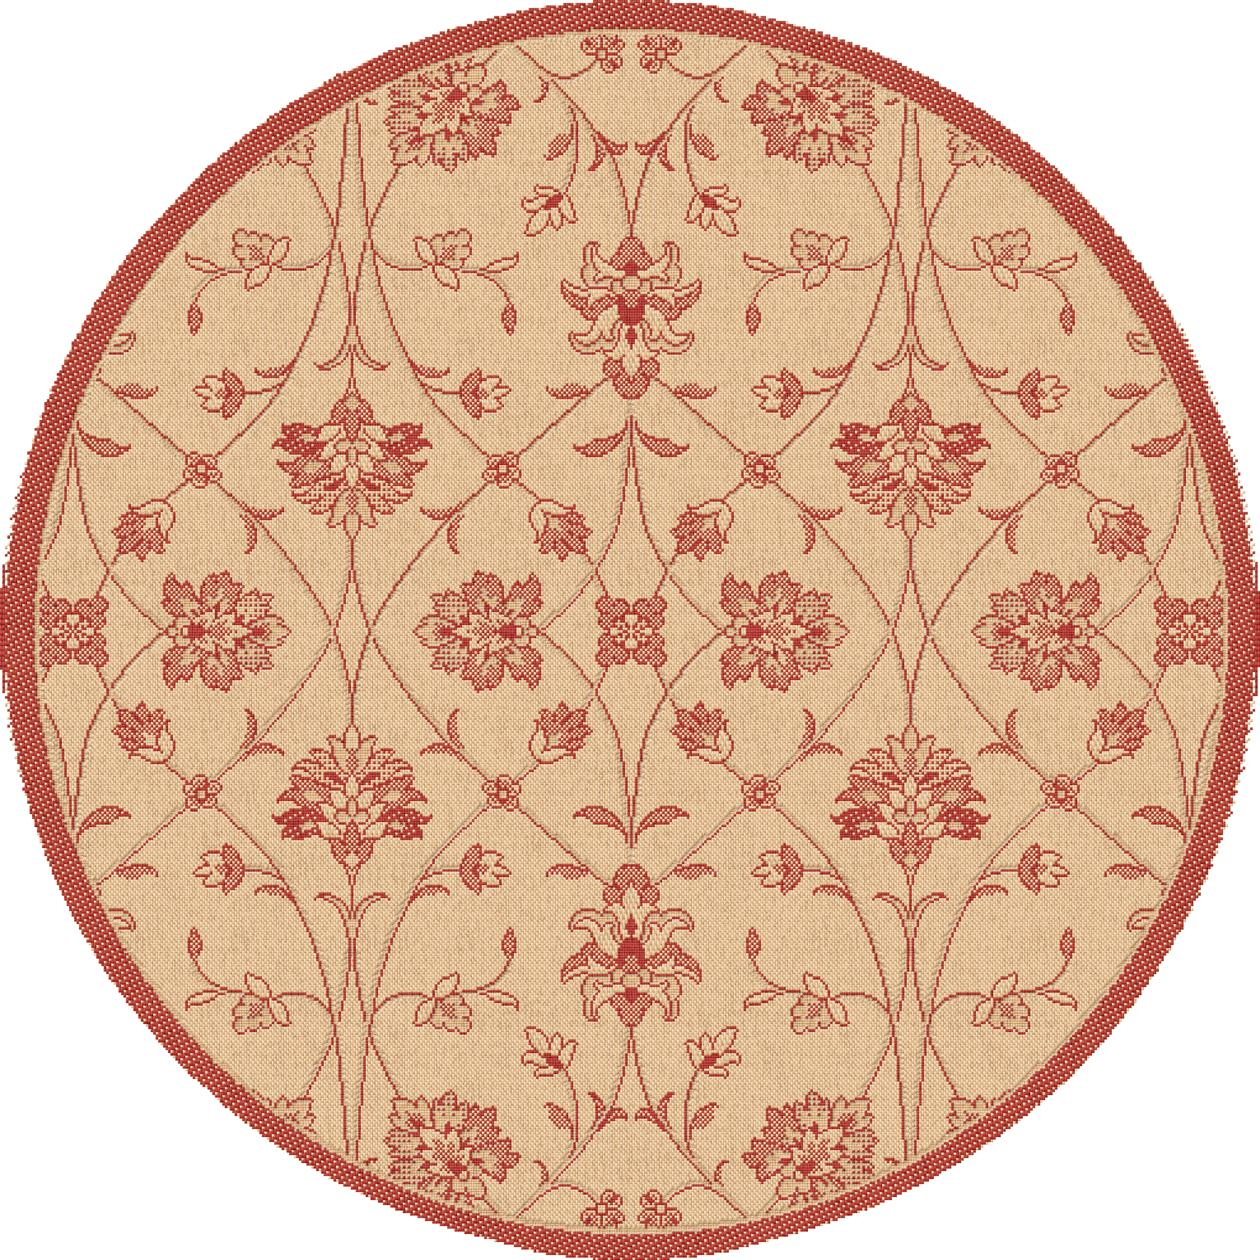 Dynamic Rugs Piazza Floral Red 2744 Area Rug